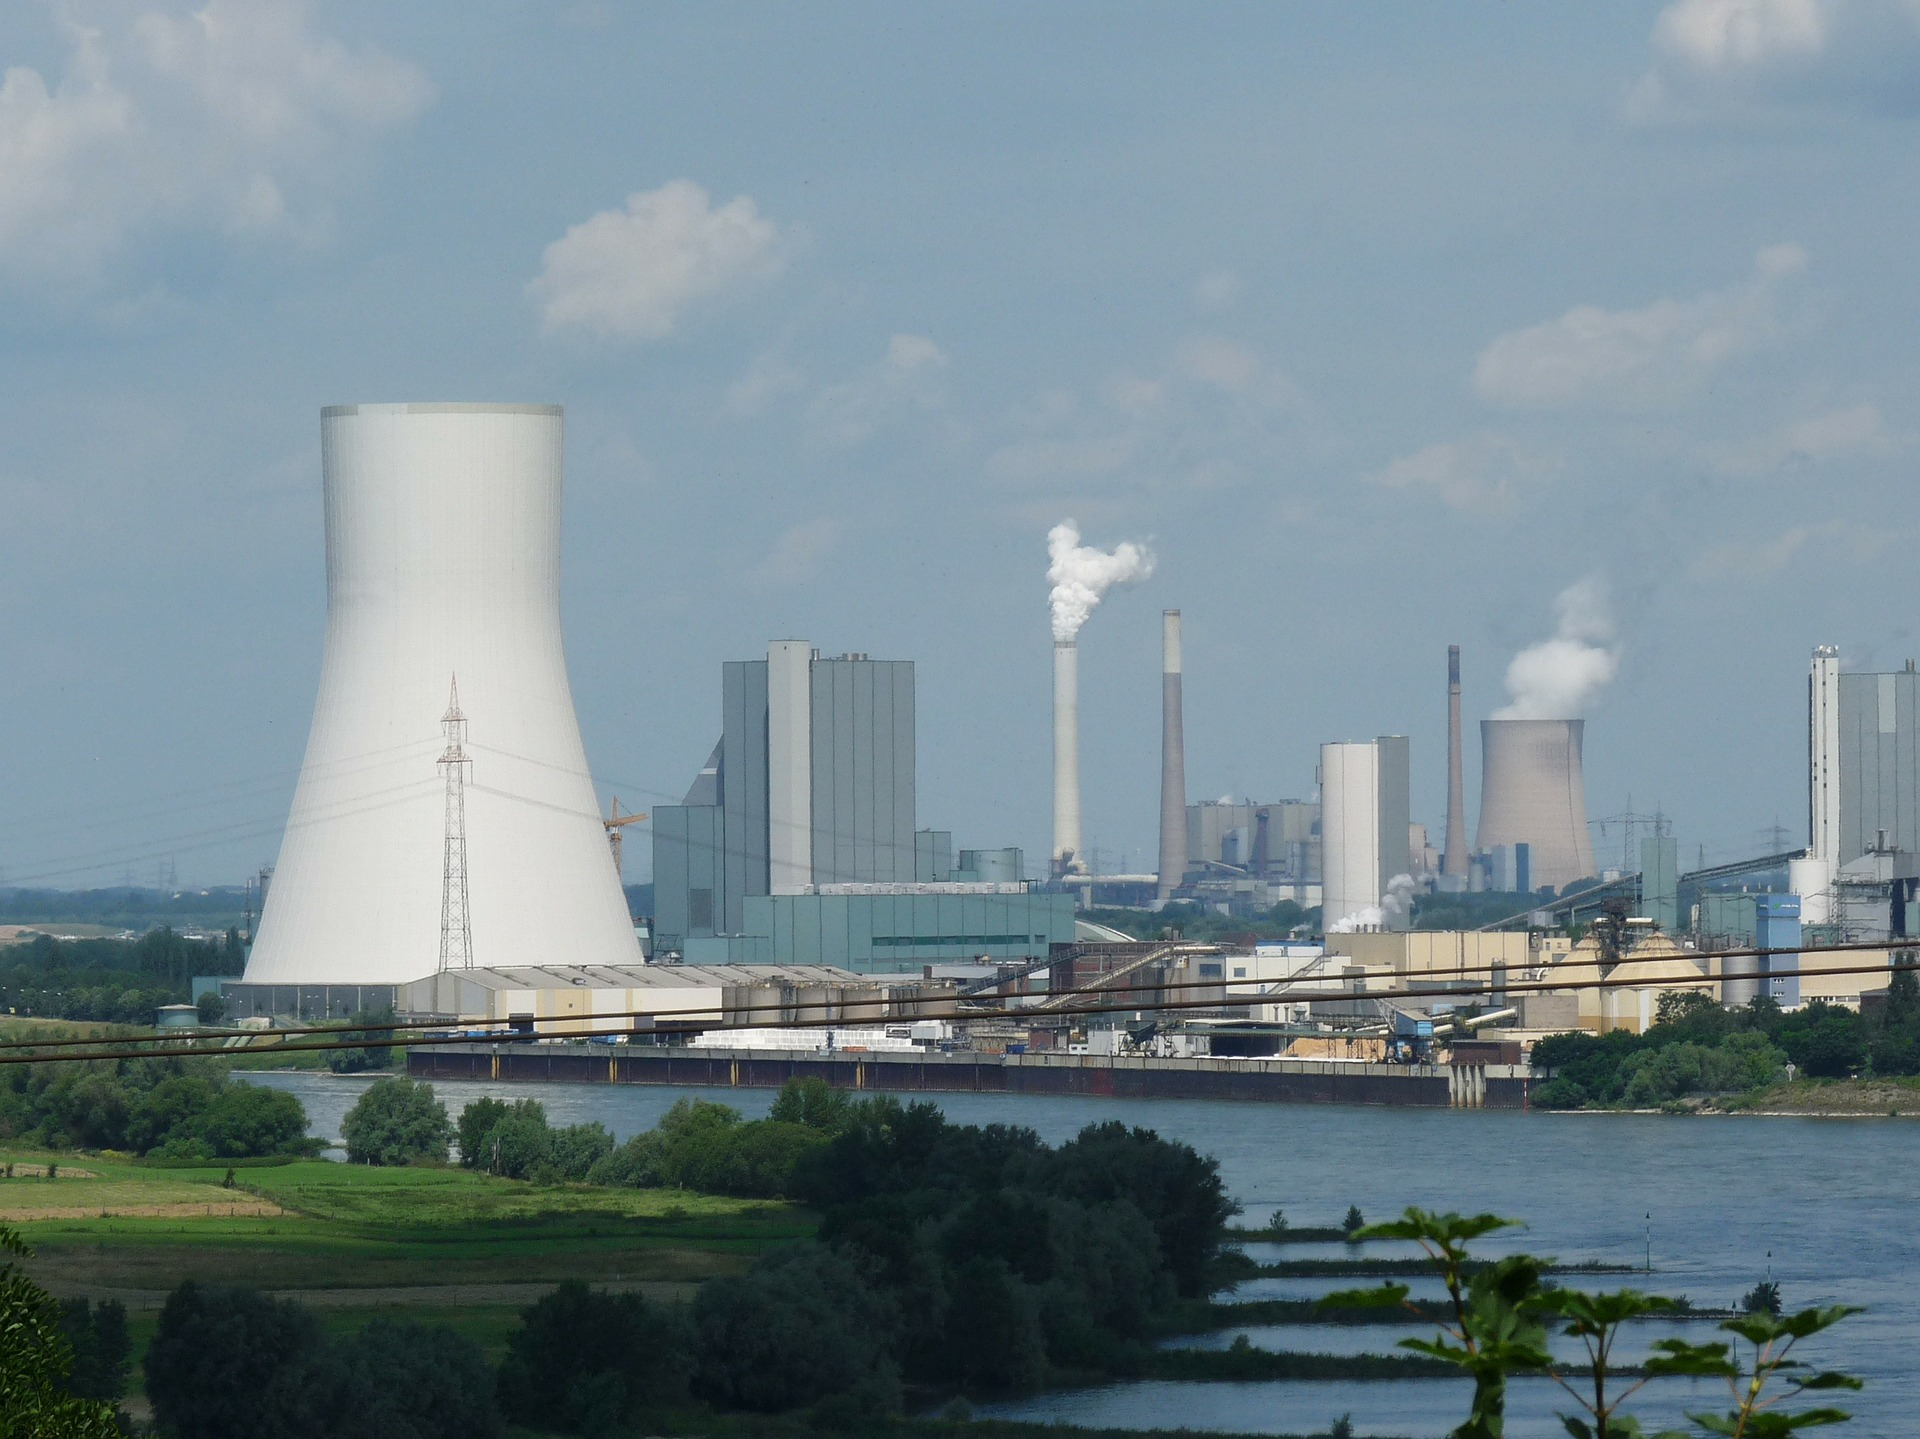 Kraftwerk statt alternative Energien